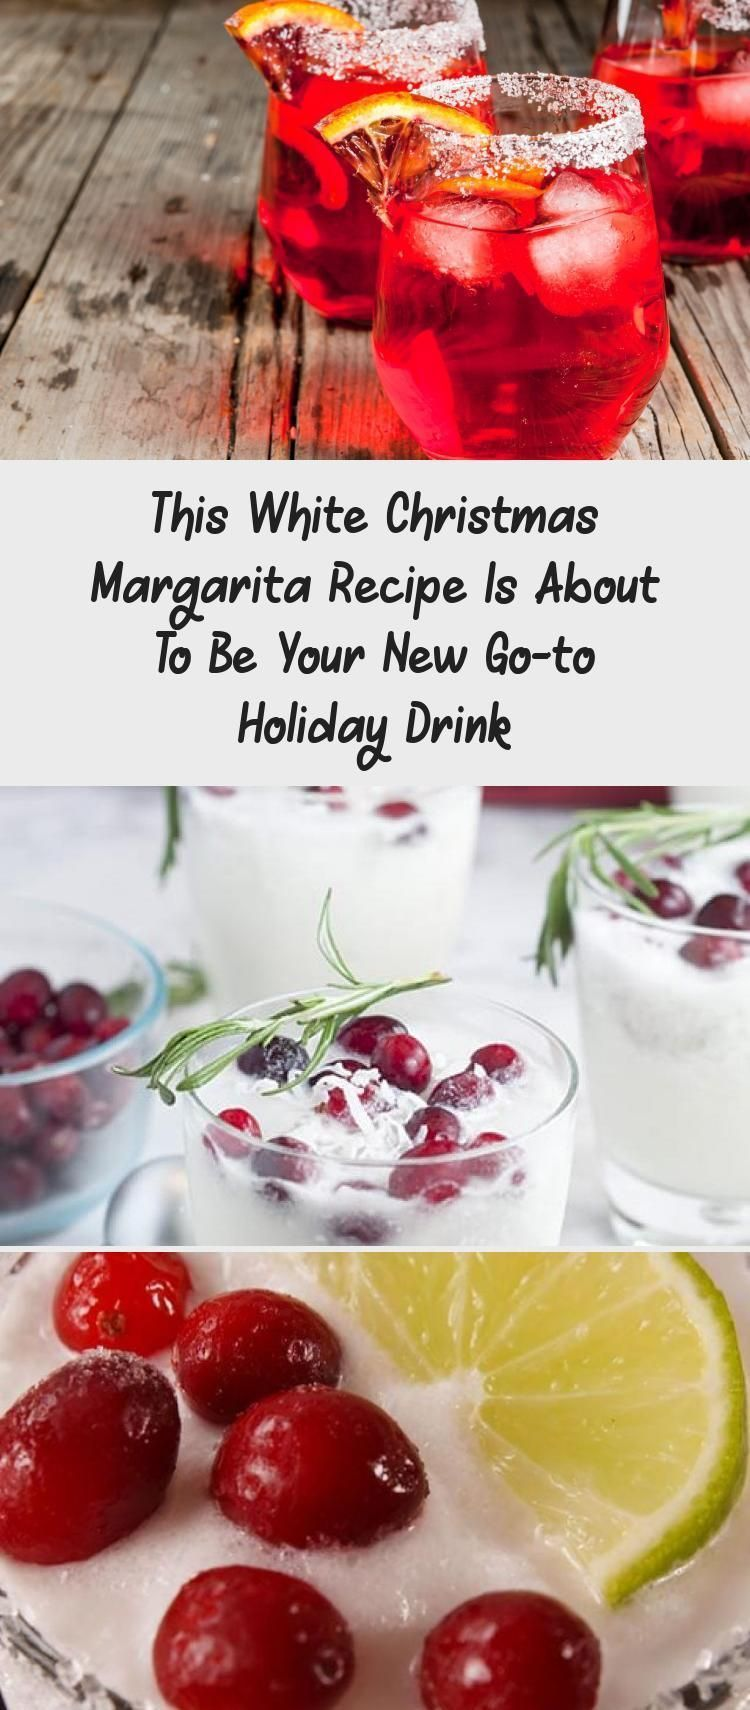 This White Christmas Margarita Recipe Is About To Be Your New Go-to Holiday Drink #christmasmargarita This White Christmas Margarita Recipe Is About To Be Your New Go-To Holiday Drink #whitedrinksNonAlcoholic #whitedrinksStarbucks #whitedrinksAesthetic #BlackAndwhitedrinks #Skinwhitedrinks #christmasmargarita This White Christmas Margarita Recipe Is About To Be Your New Go-to Holiday Drink #christmasmargarita This White Christmas Margarita Recipe Is About To Be Your New Go-To Holiday Drink #whit #christmasmargarita